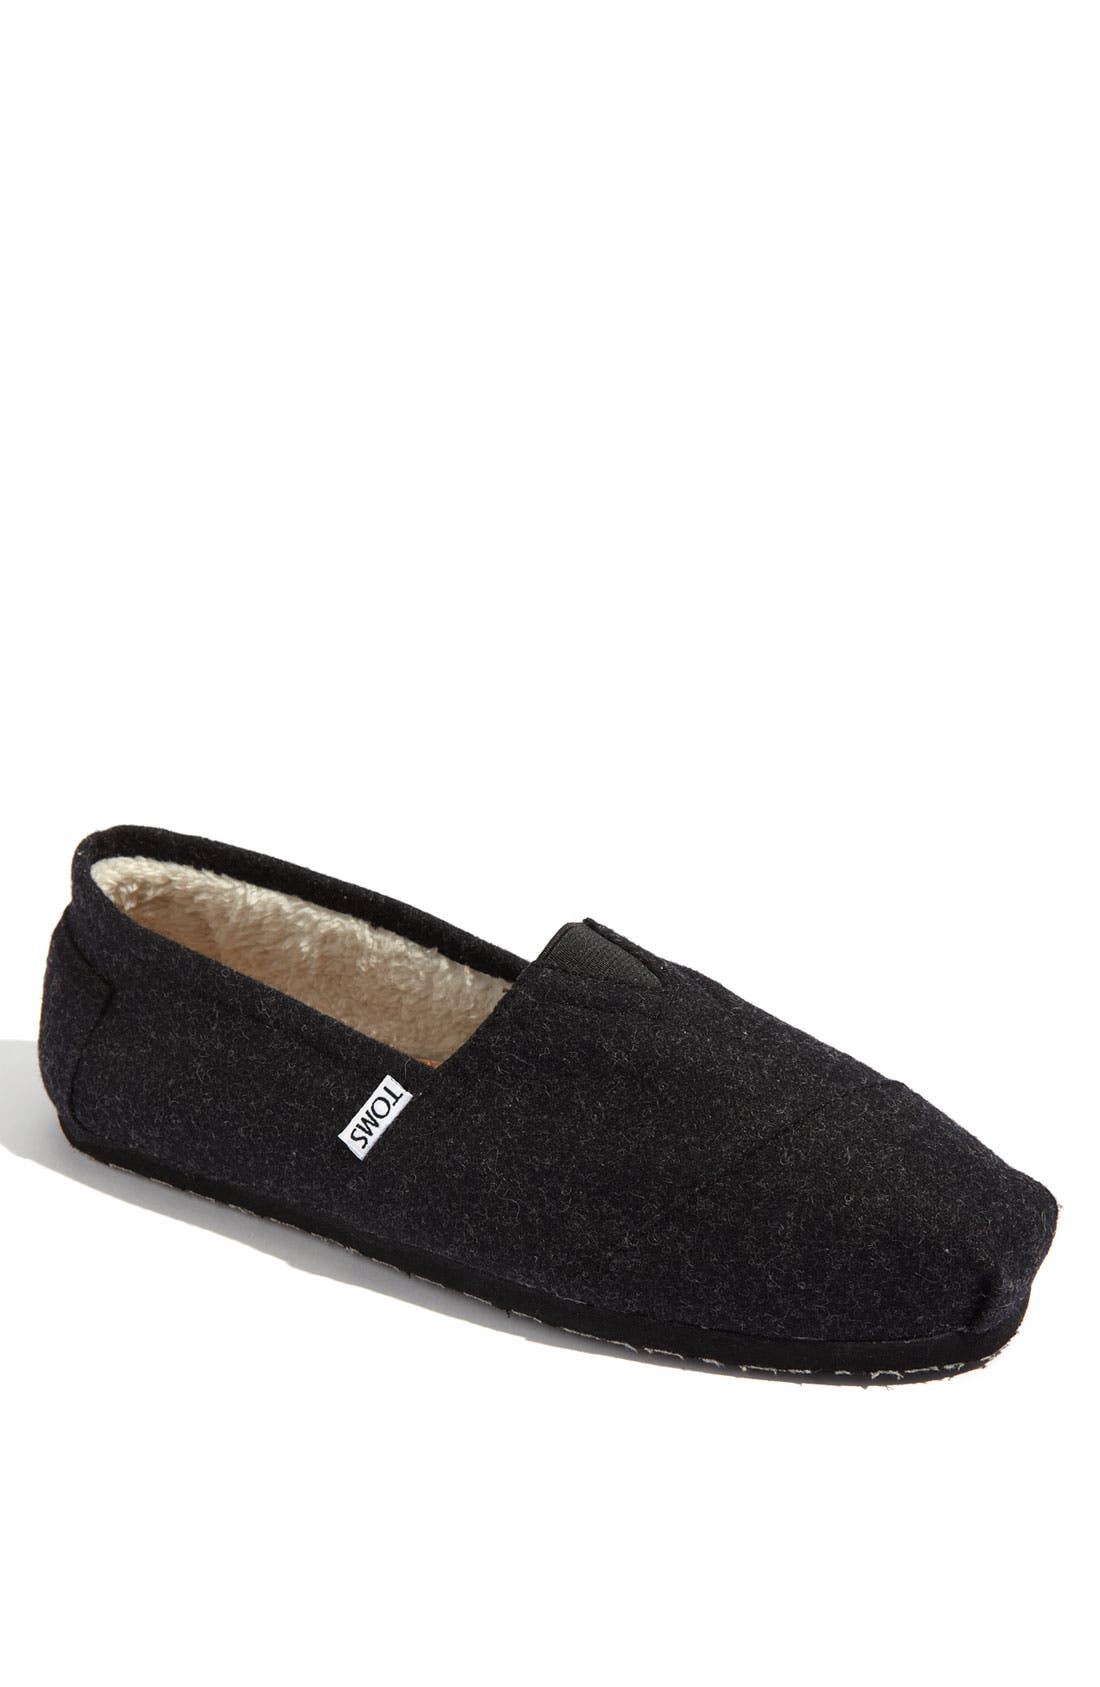 Alternate Image 1 Selected - TOMS 'Classic' Woolen Slip-On (Men)